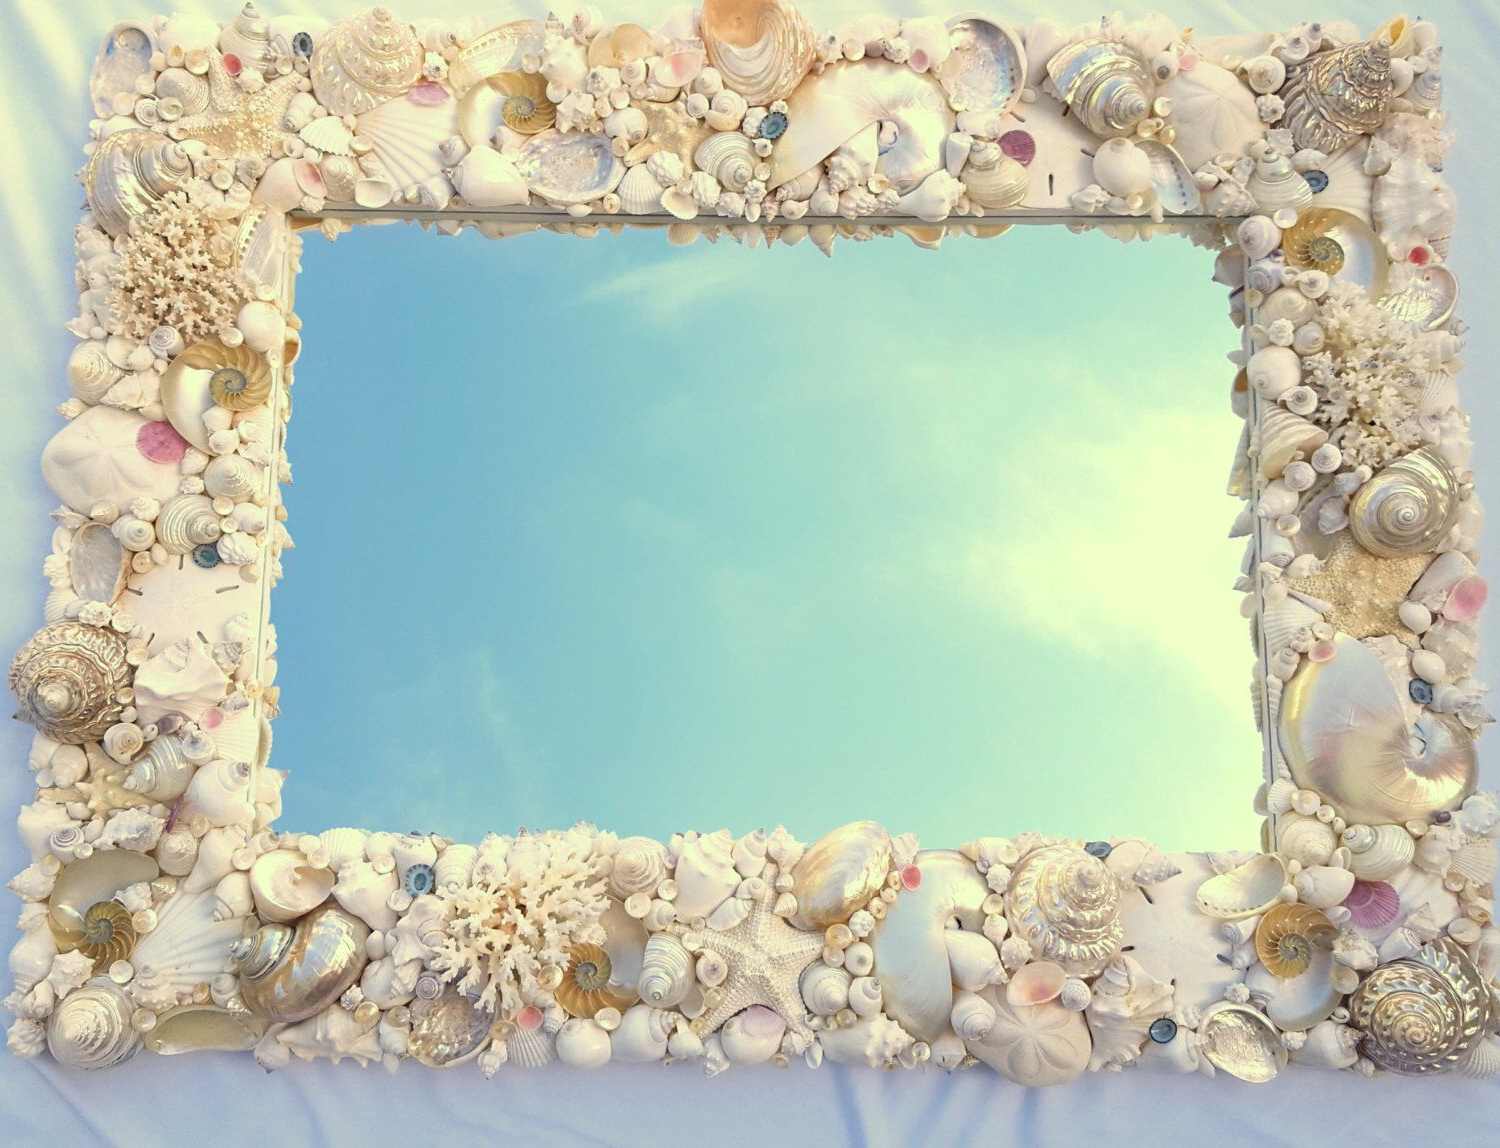 Beach Decor Seashell Mirror, Nautical Decor Custom Shell Mirror Regarding 2019 Seashell Wall Mirrors (View 3 of 20)